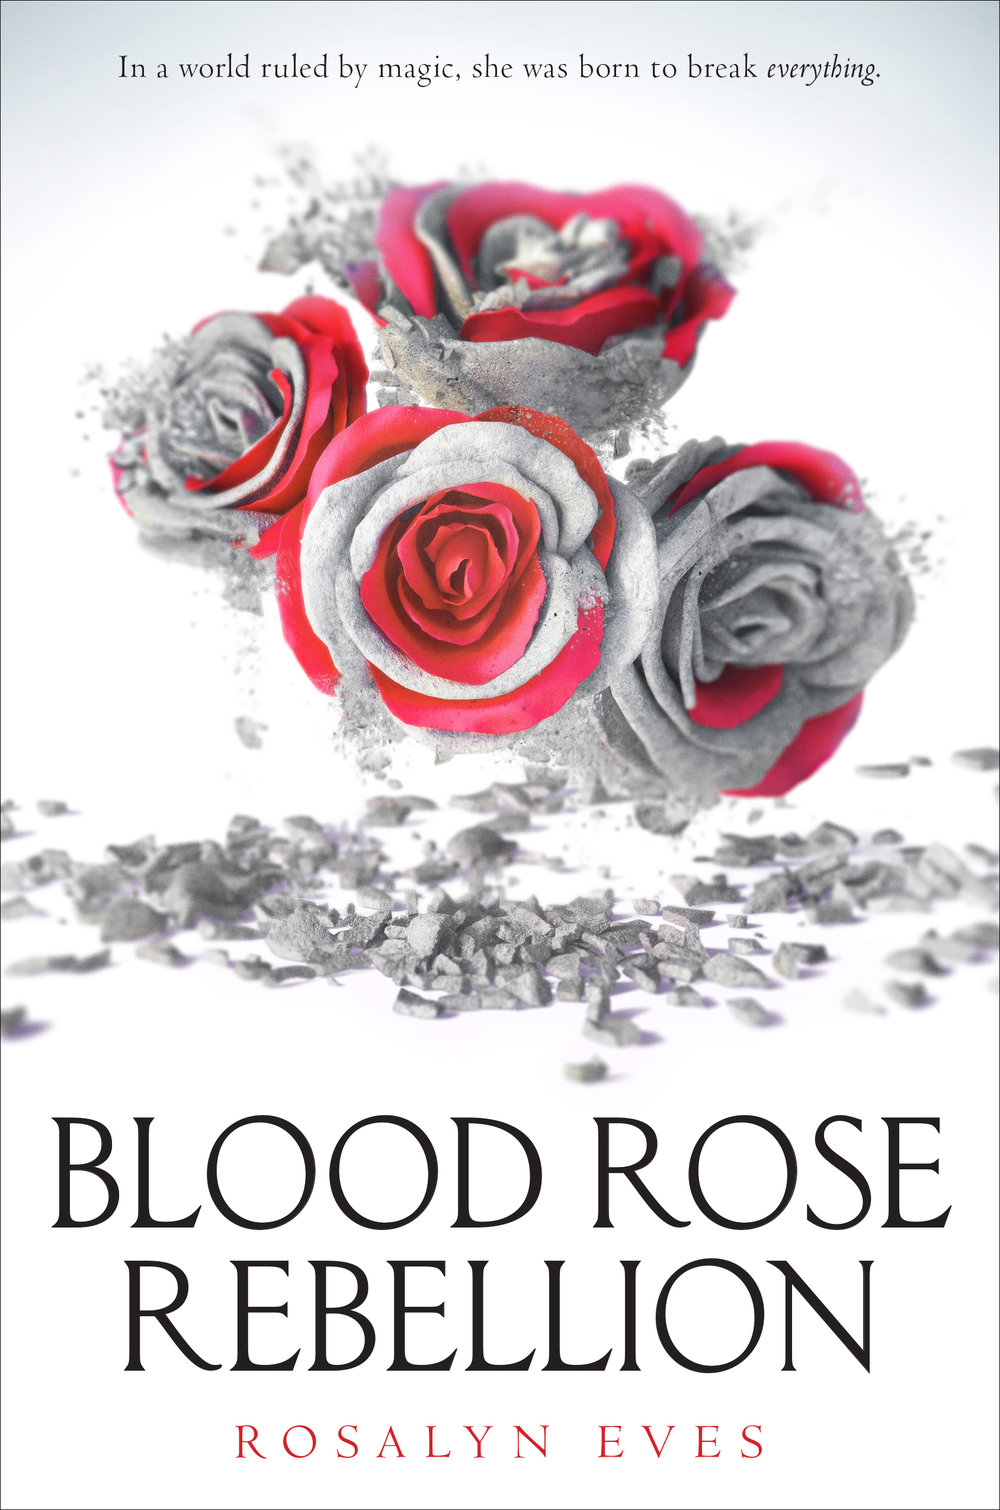 BLOOD+ROSE+REBELLION+R3+V11+091916.jpg